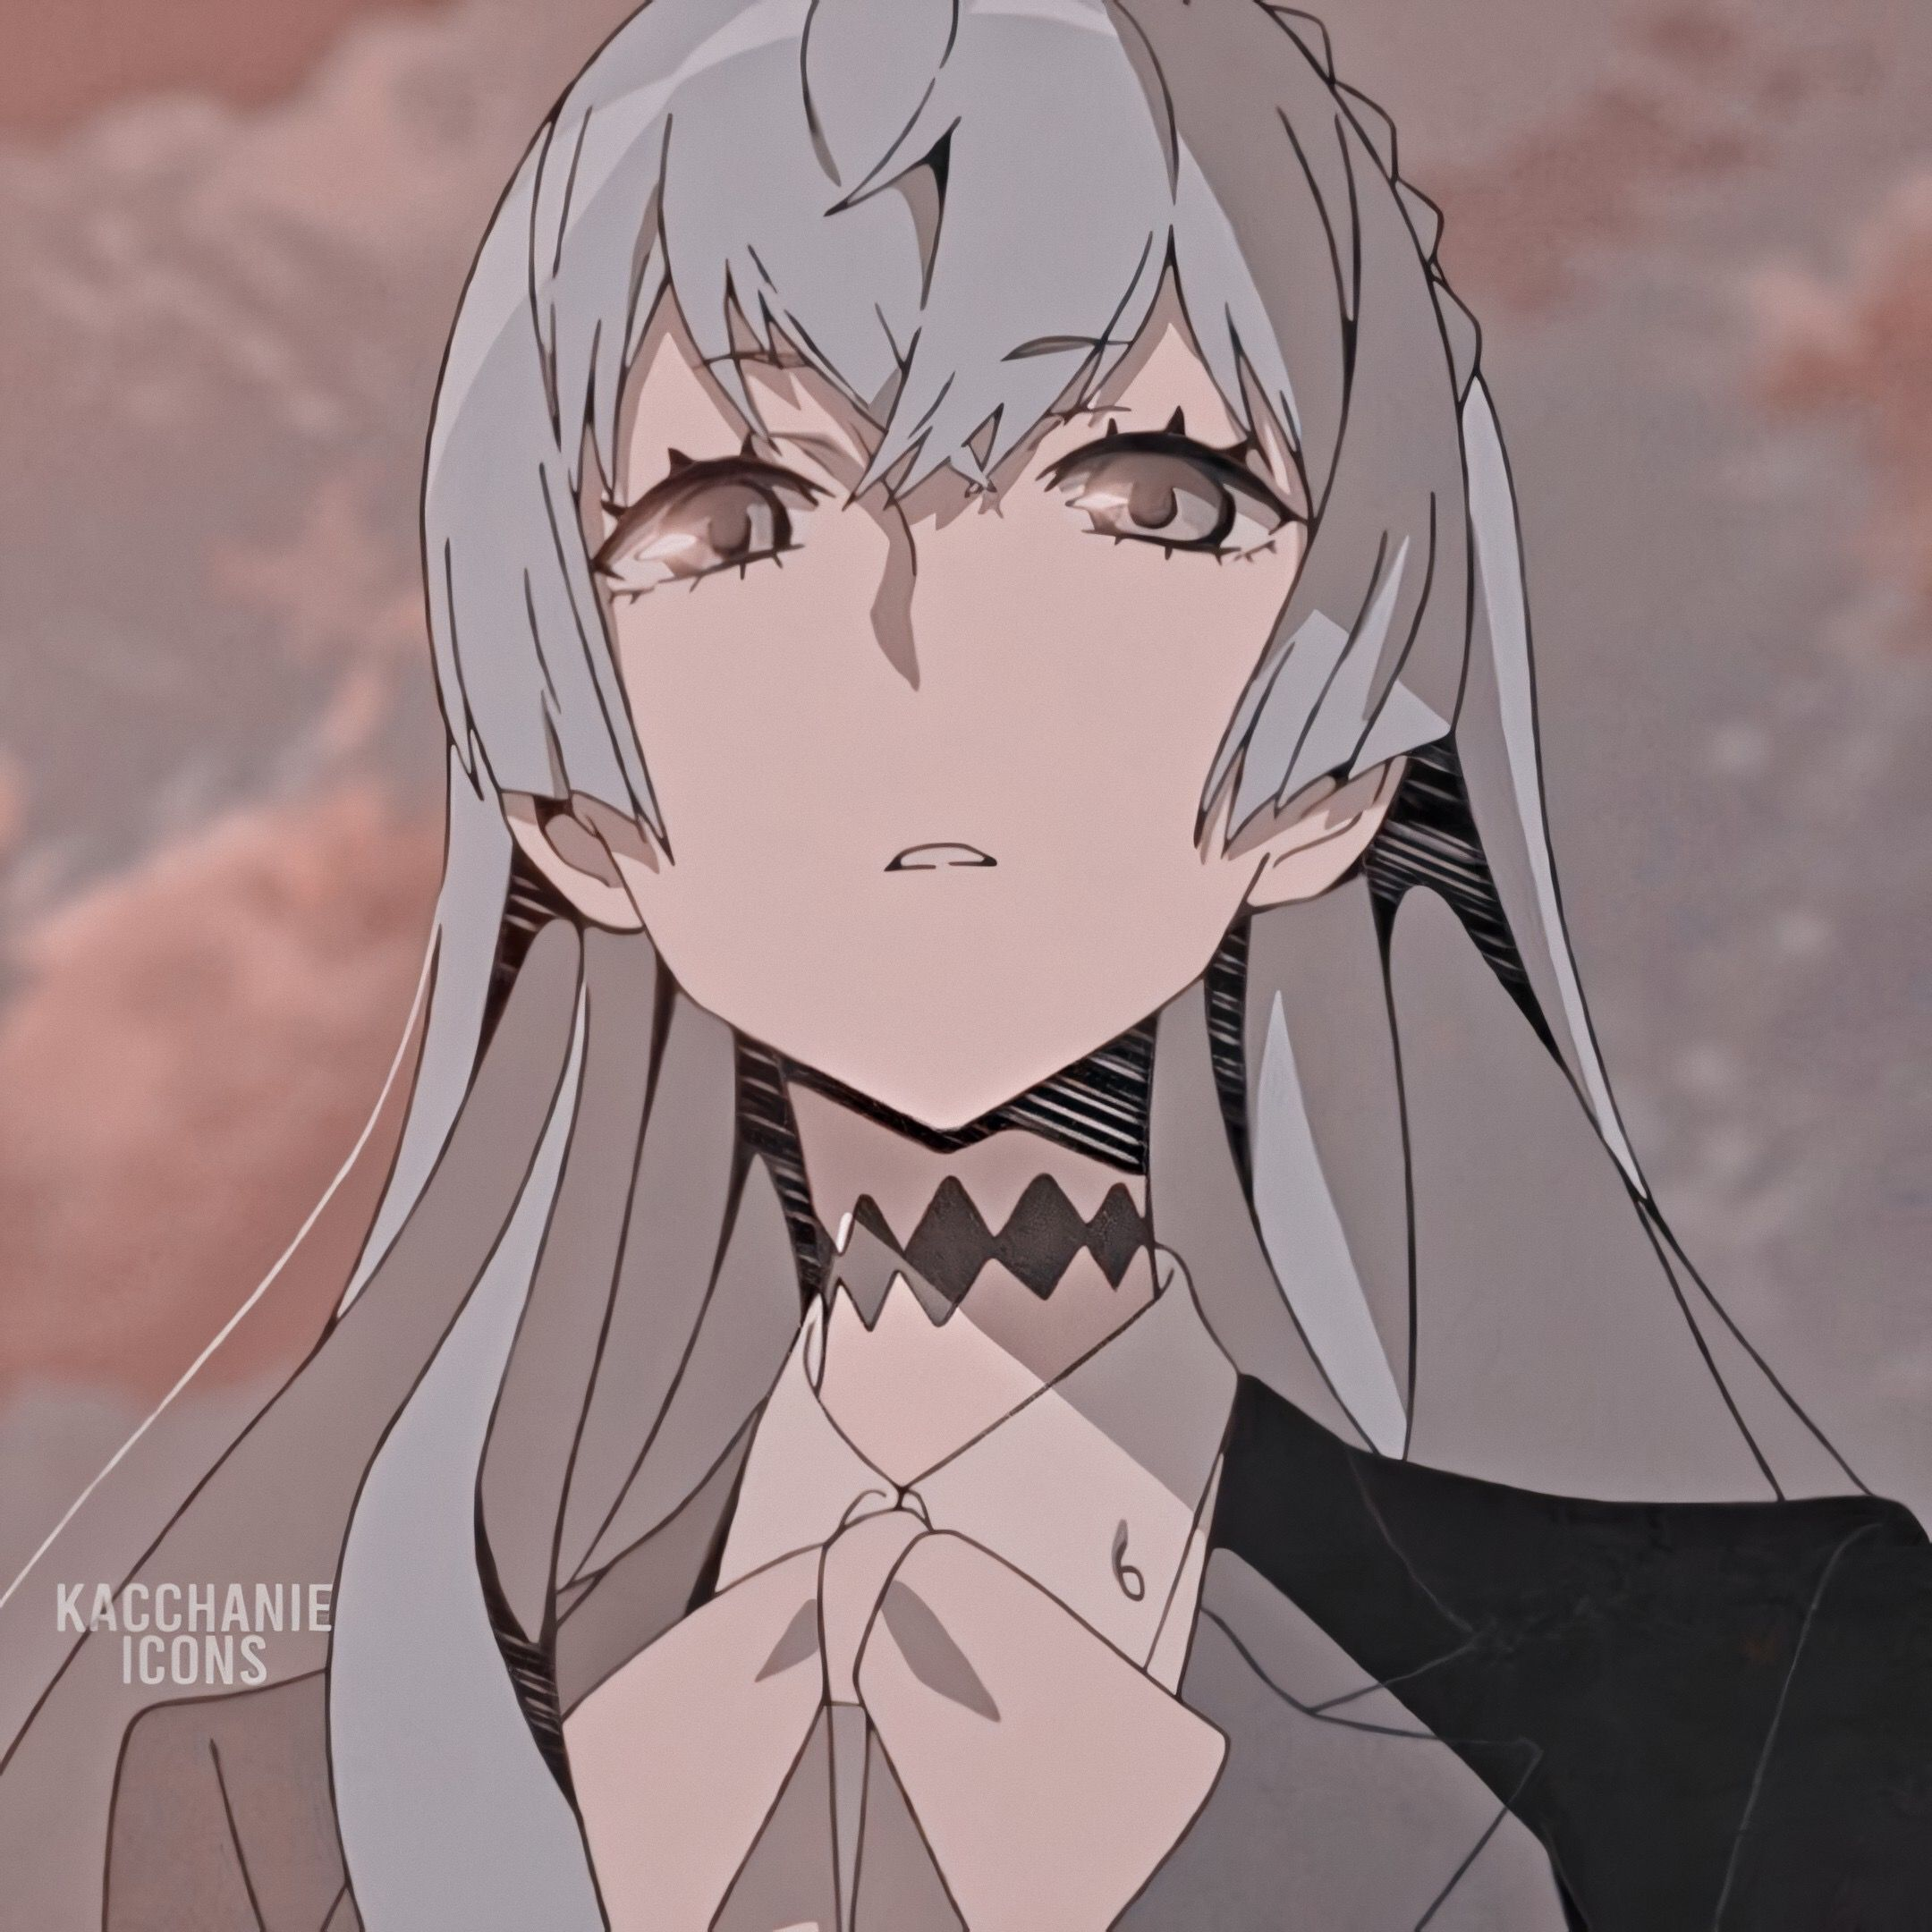 𓇢༘𓈒 𝙞𝙘𝙤𝙣 𓍢𓄹𓈒 in 2020 Anime expressions, Anime icons, Anime